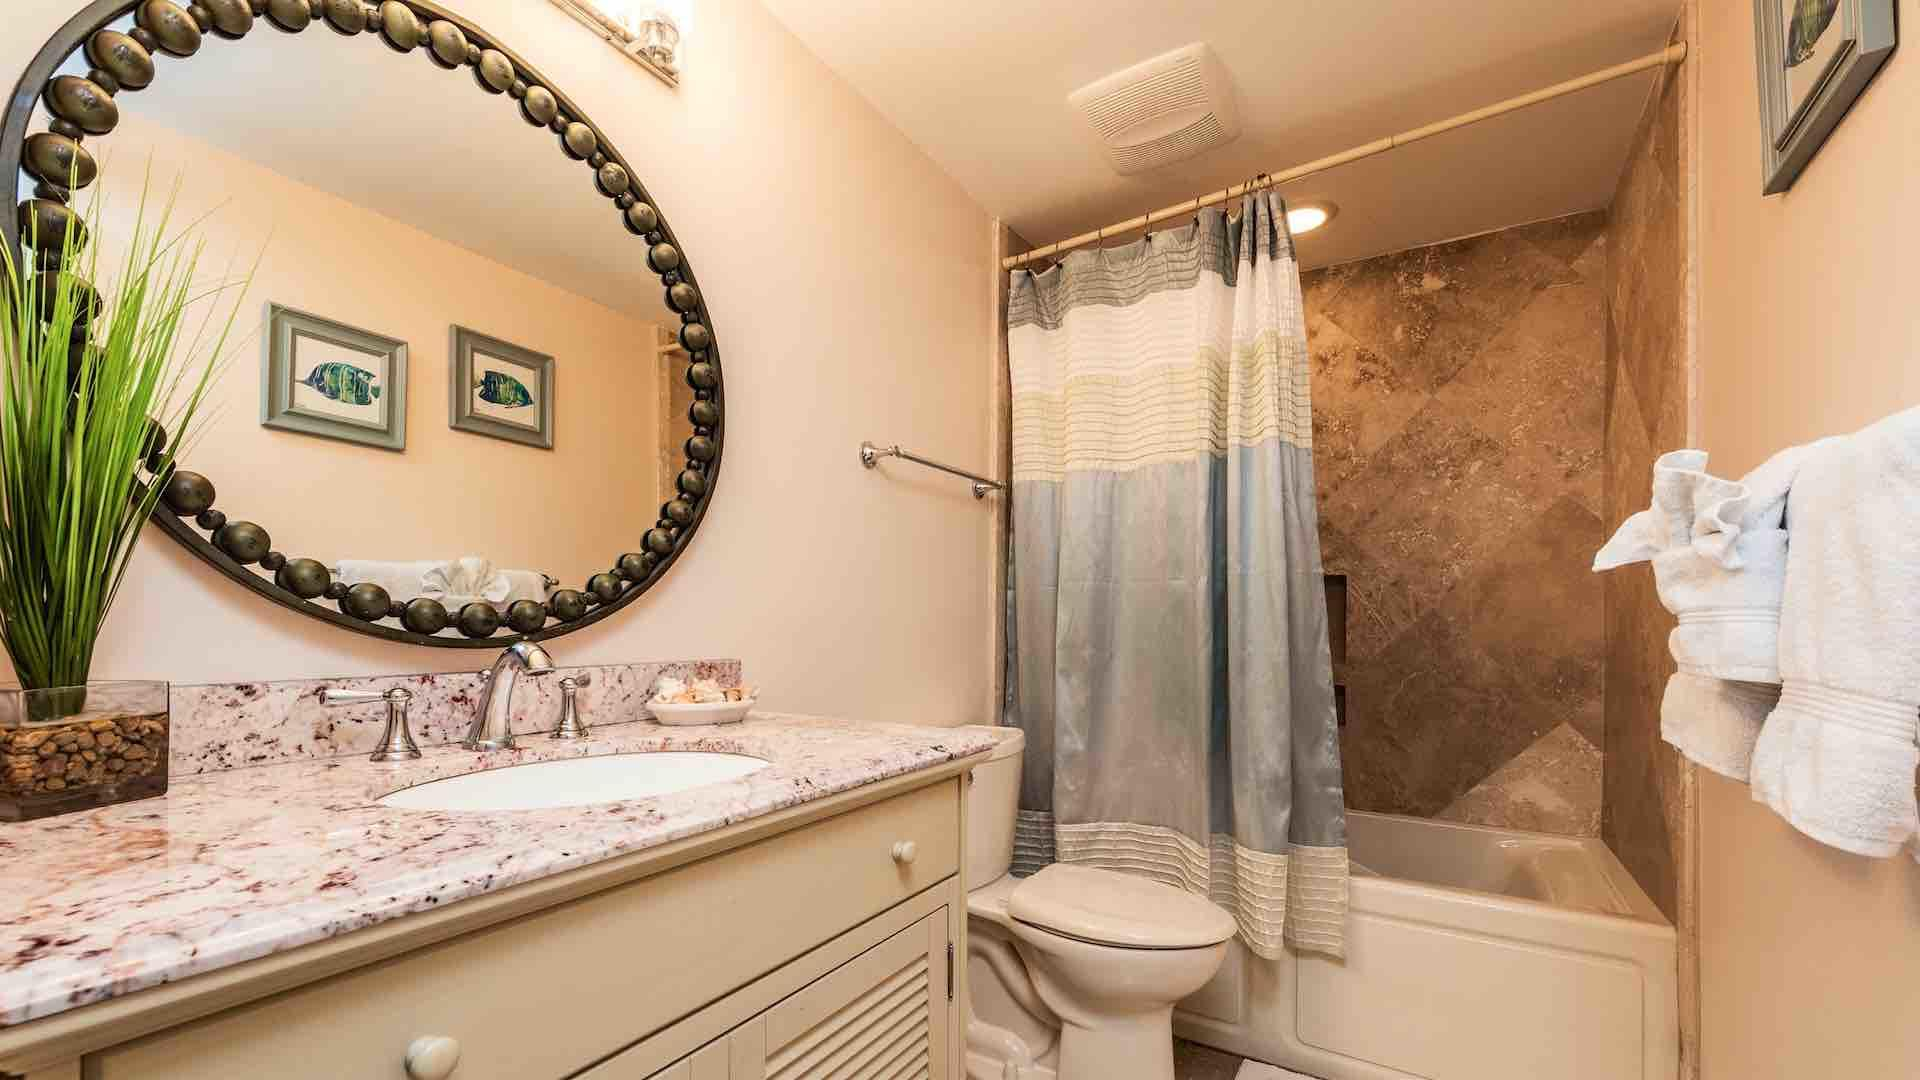 The second full bathroom is located in the hall between the second and third bedrooms...